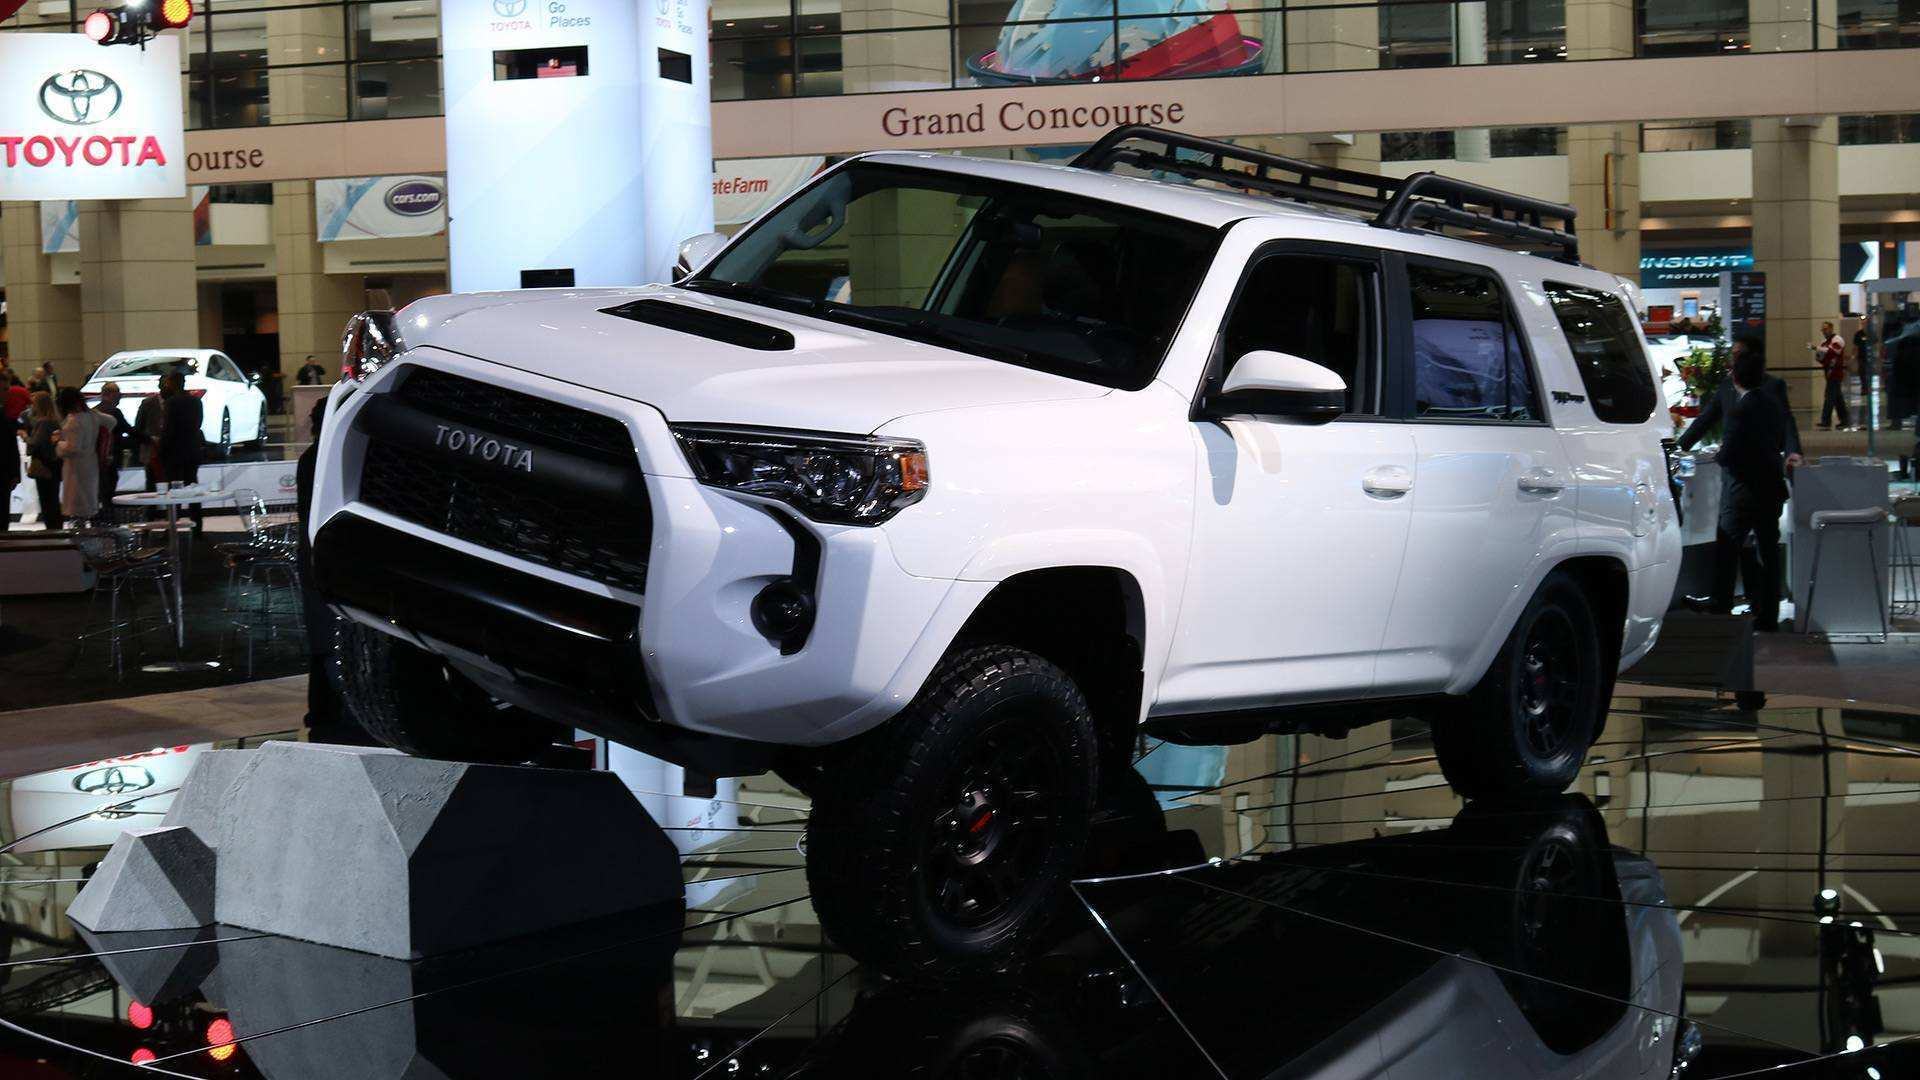 81 Great Toyota Four Runner 2020 Pricing for Toyota Four Runner 2020